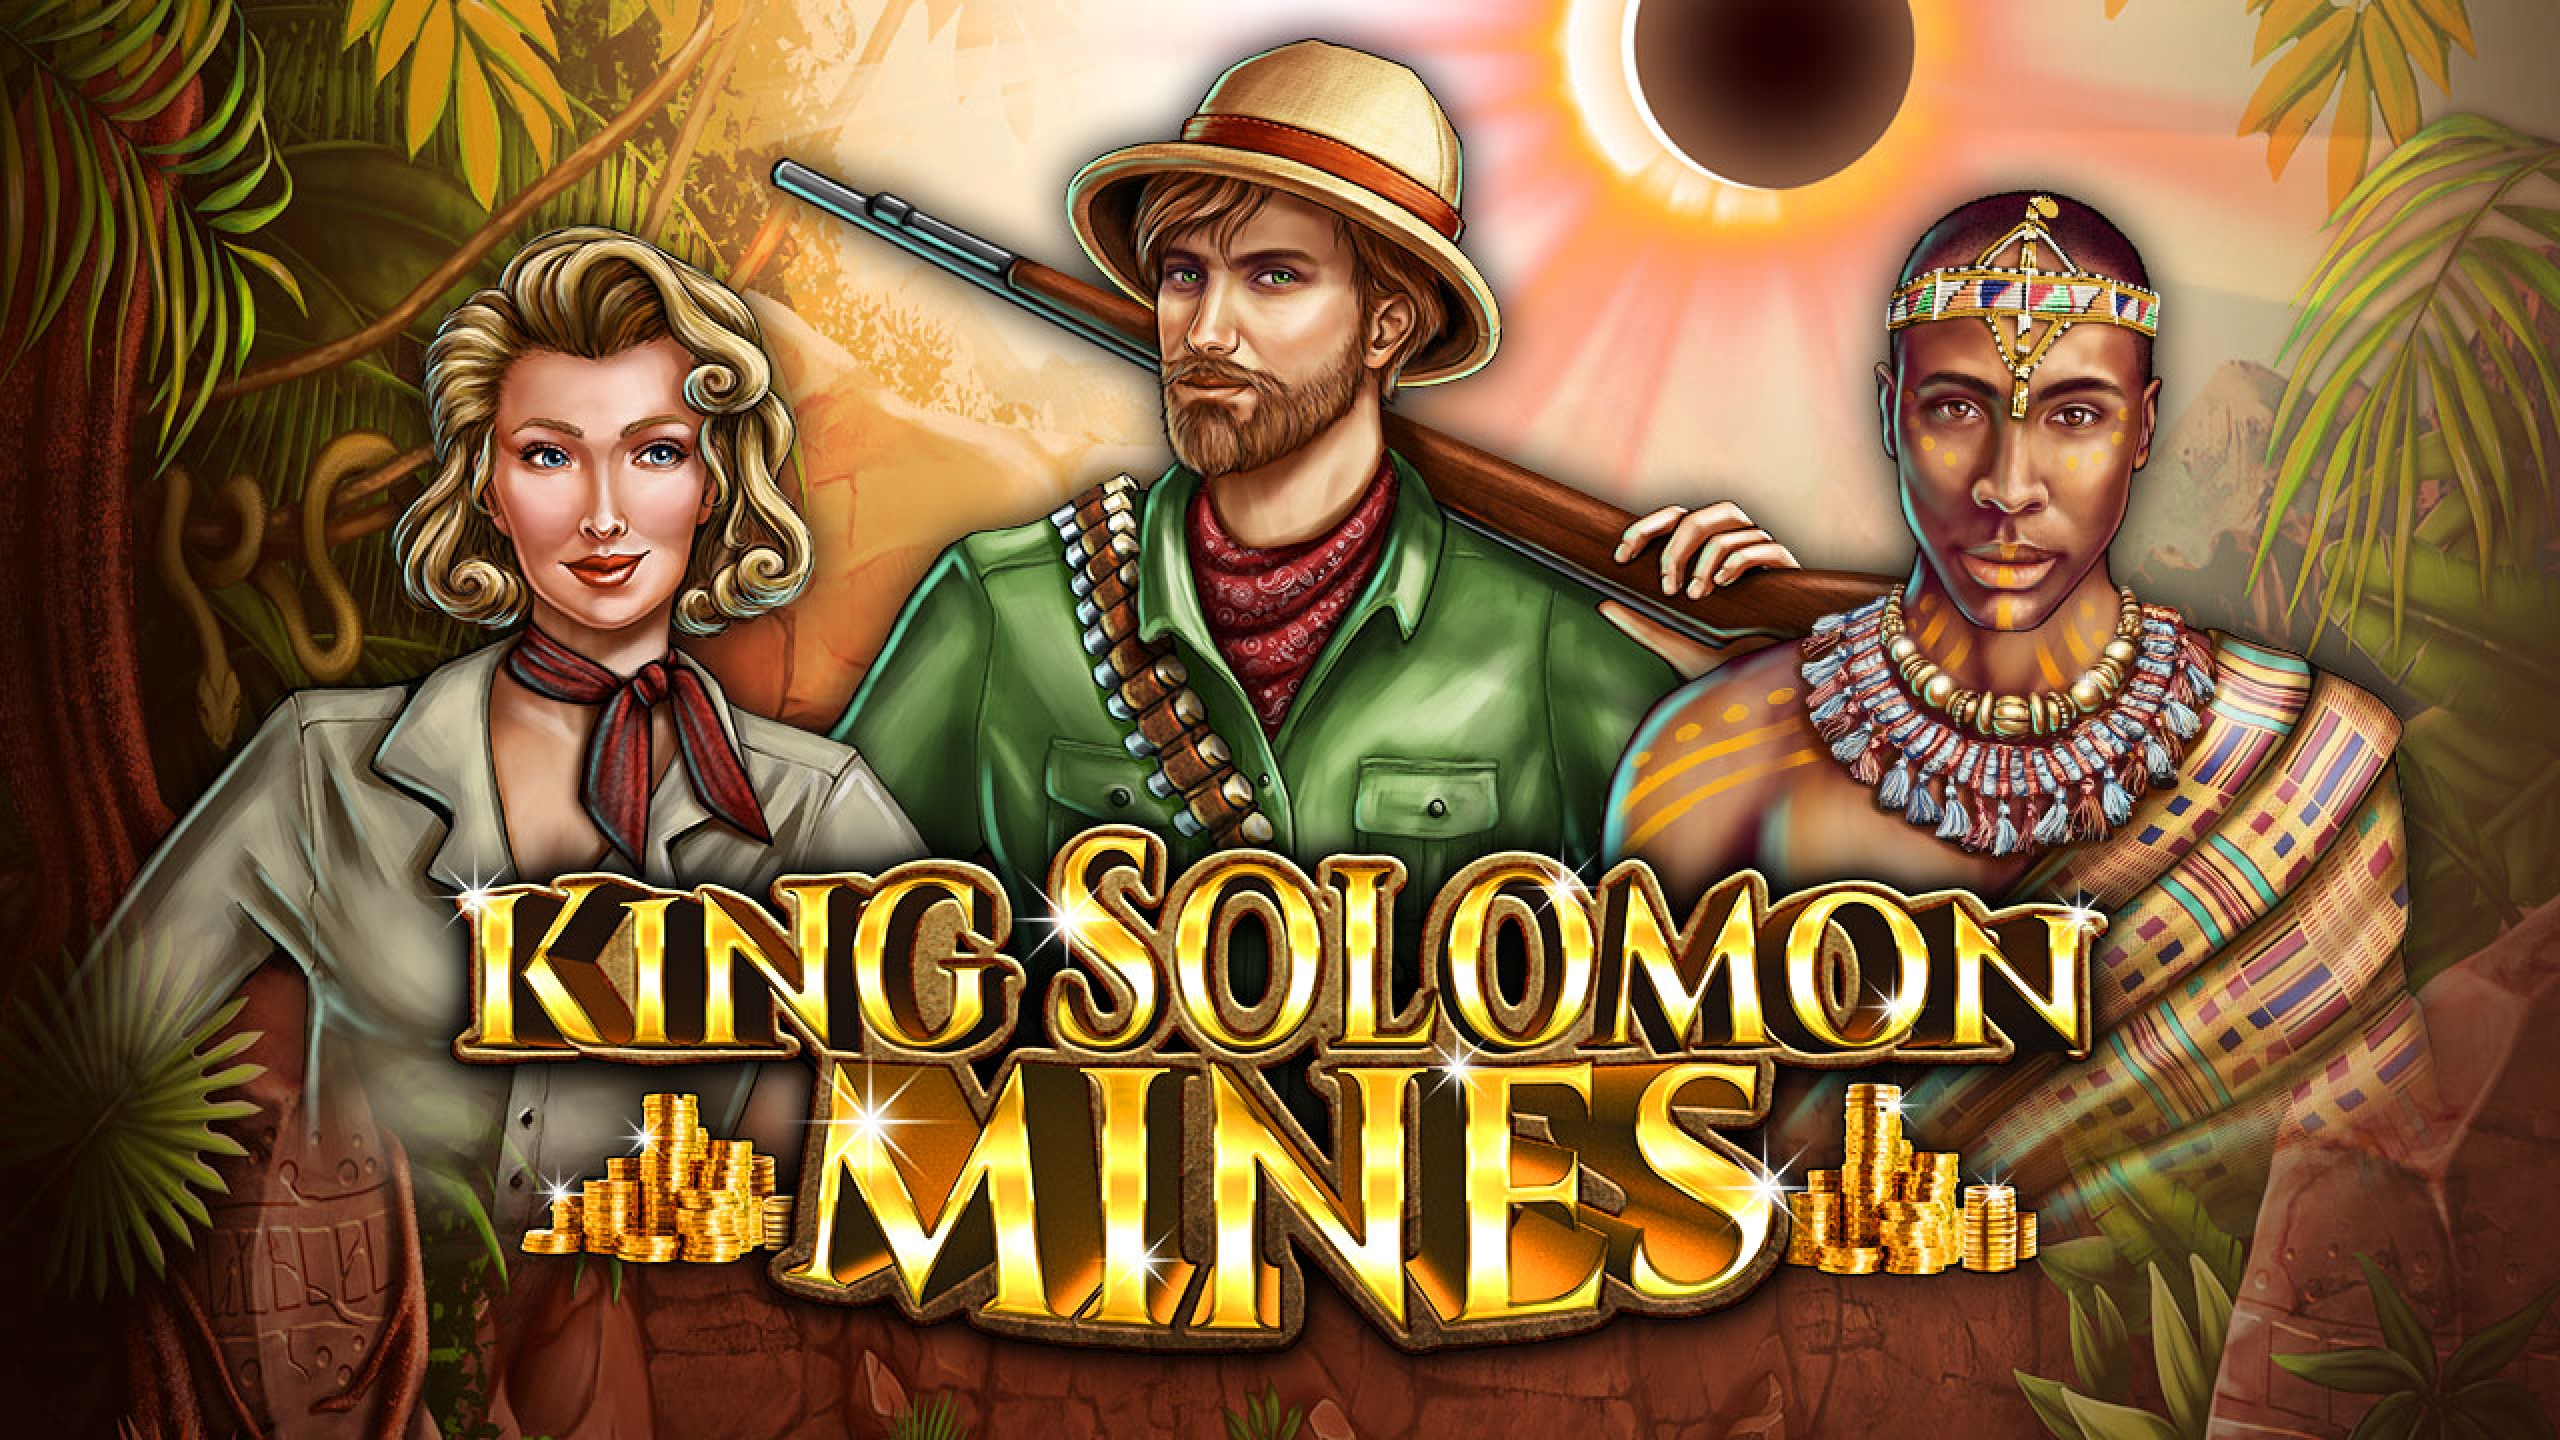 The King Solomon Mines Online Slot Demo Game by 2 By 2 Gaming